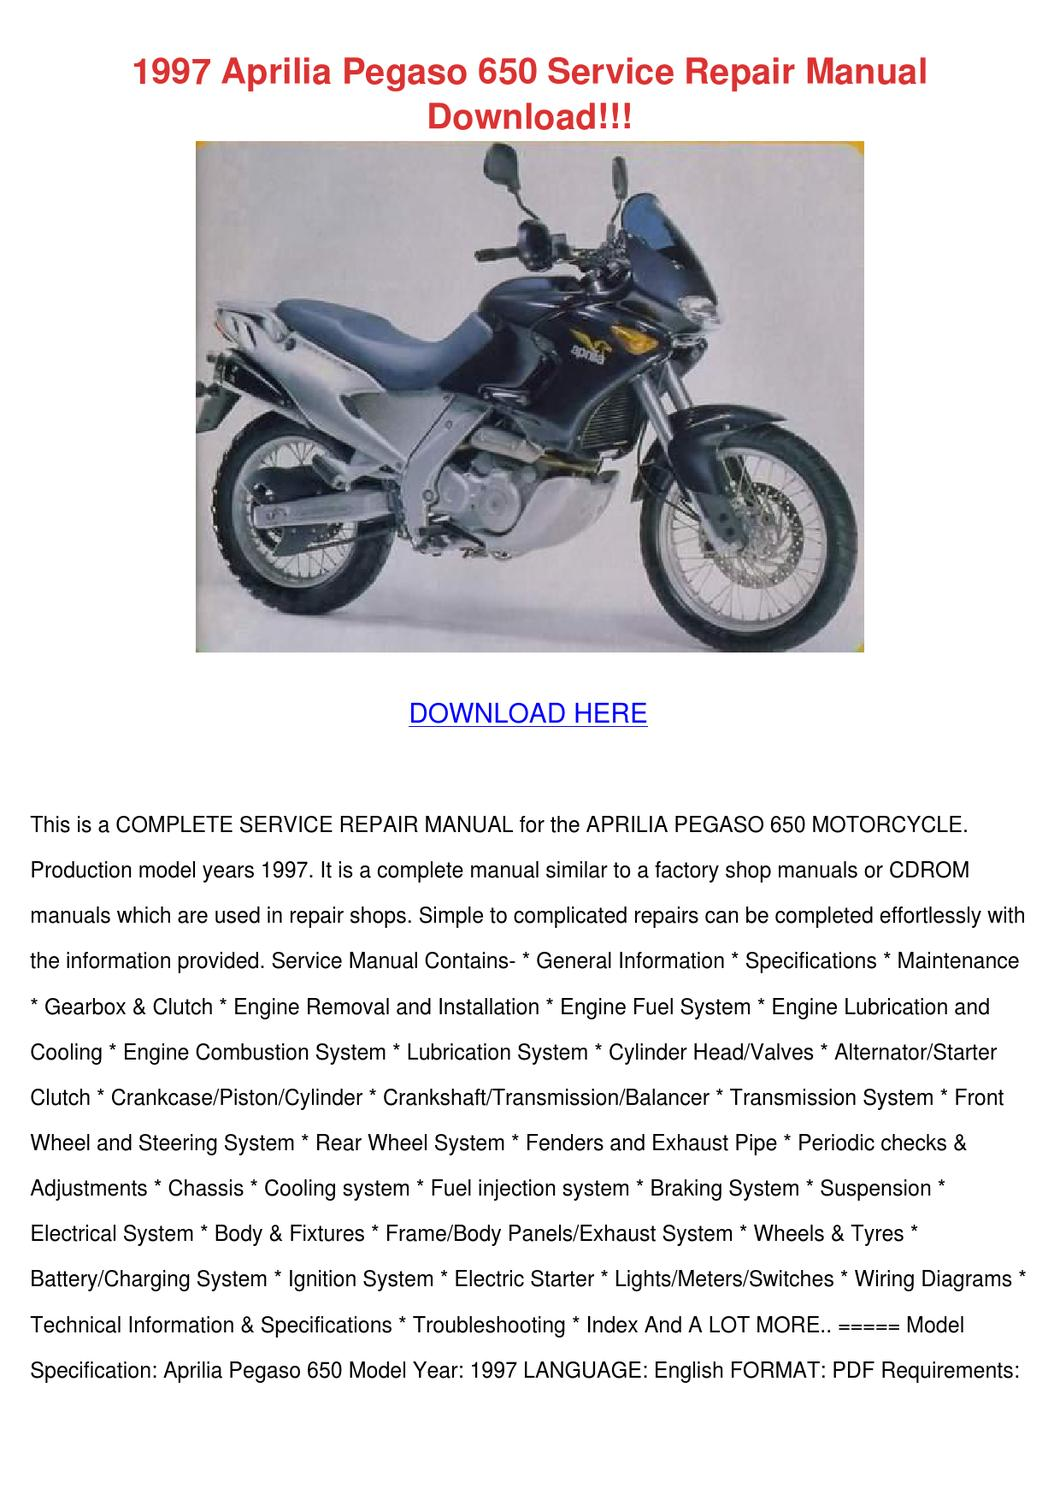 1997 Aprilia Pegaso 650 Service Repair Manual